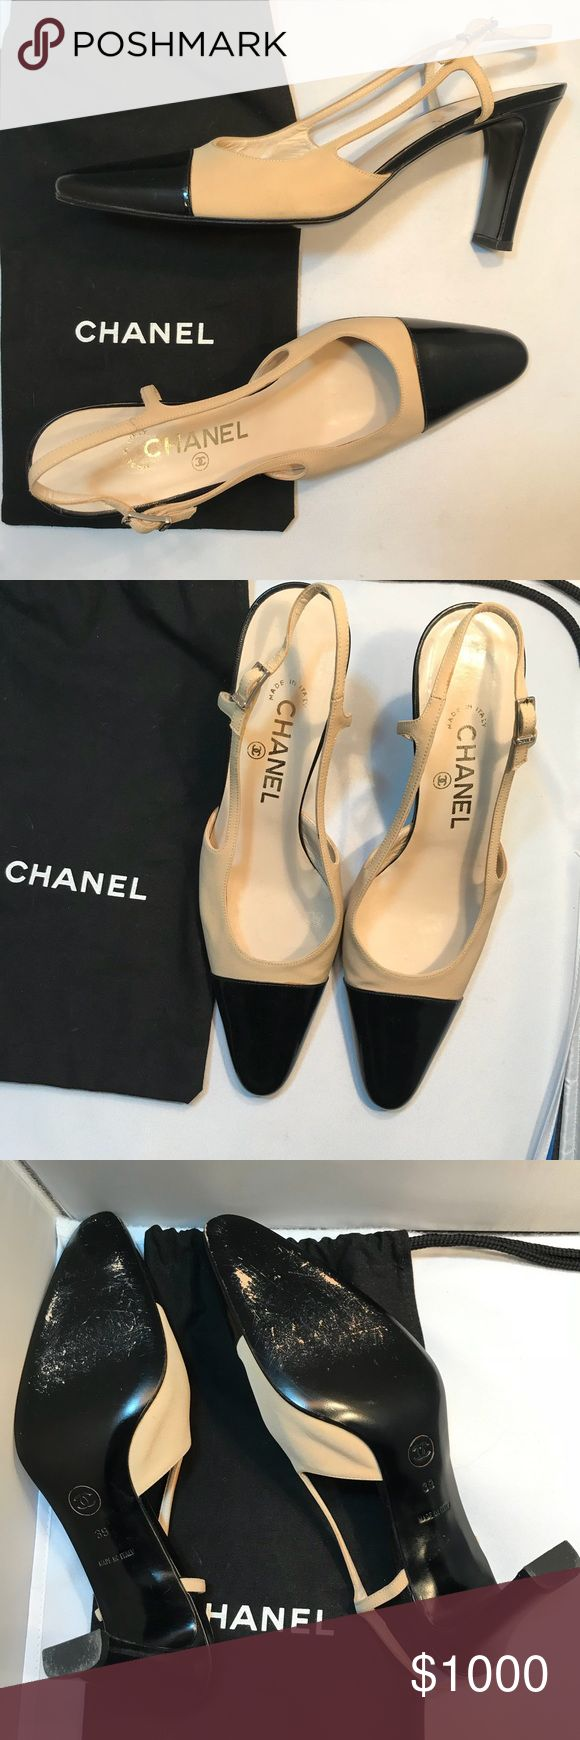 Classic Chanel Pumps 39 leather sole tan/black Excellent condition   Only worn two times   Classic look ... the color block elongates the leg ... super flattering shoe  Sorry, I did not keep the box CHANEL Shoes